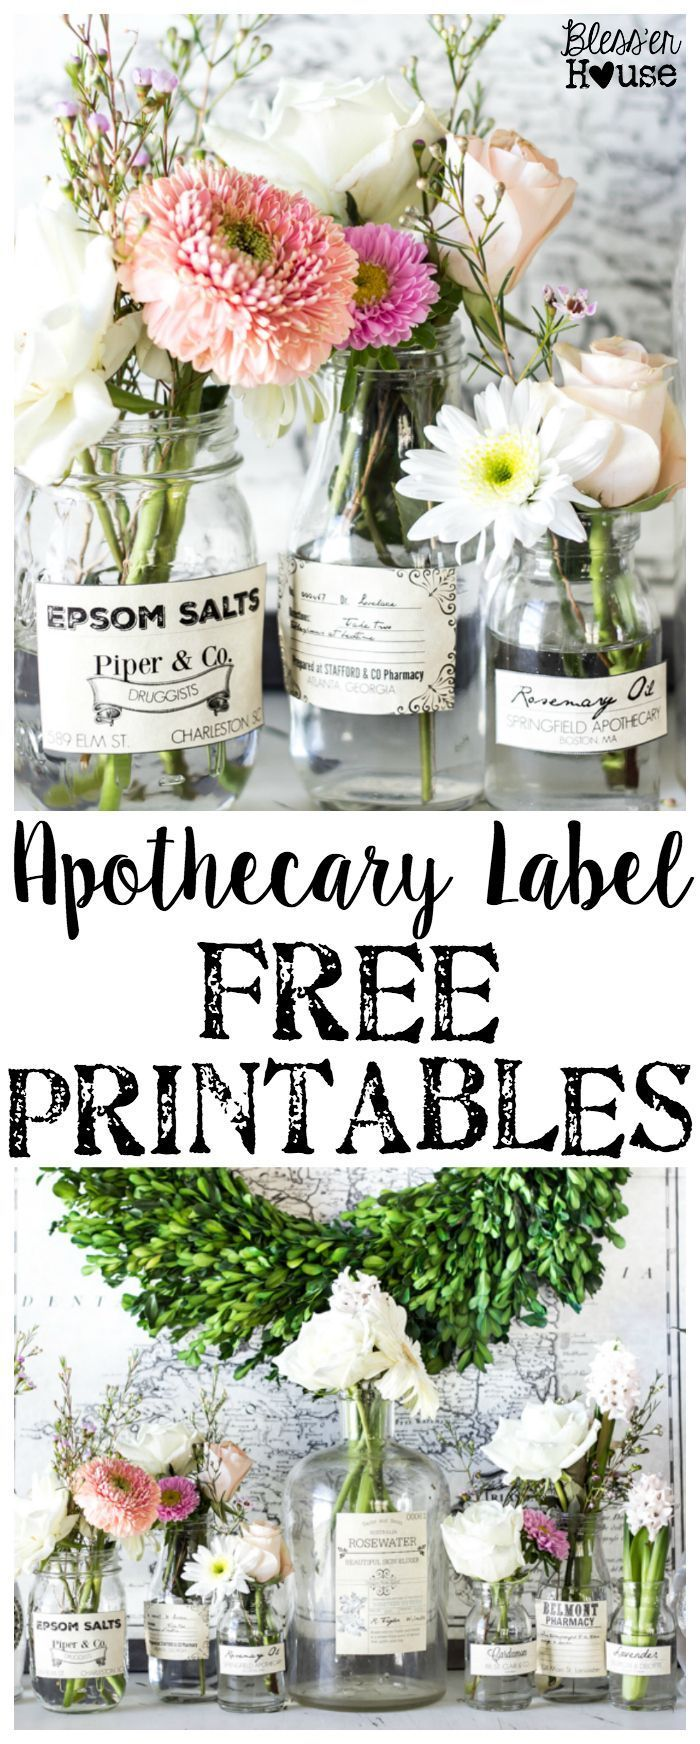 Apothecary Label Free Printables